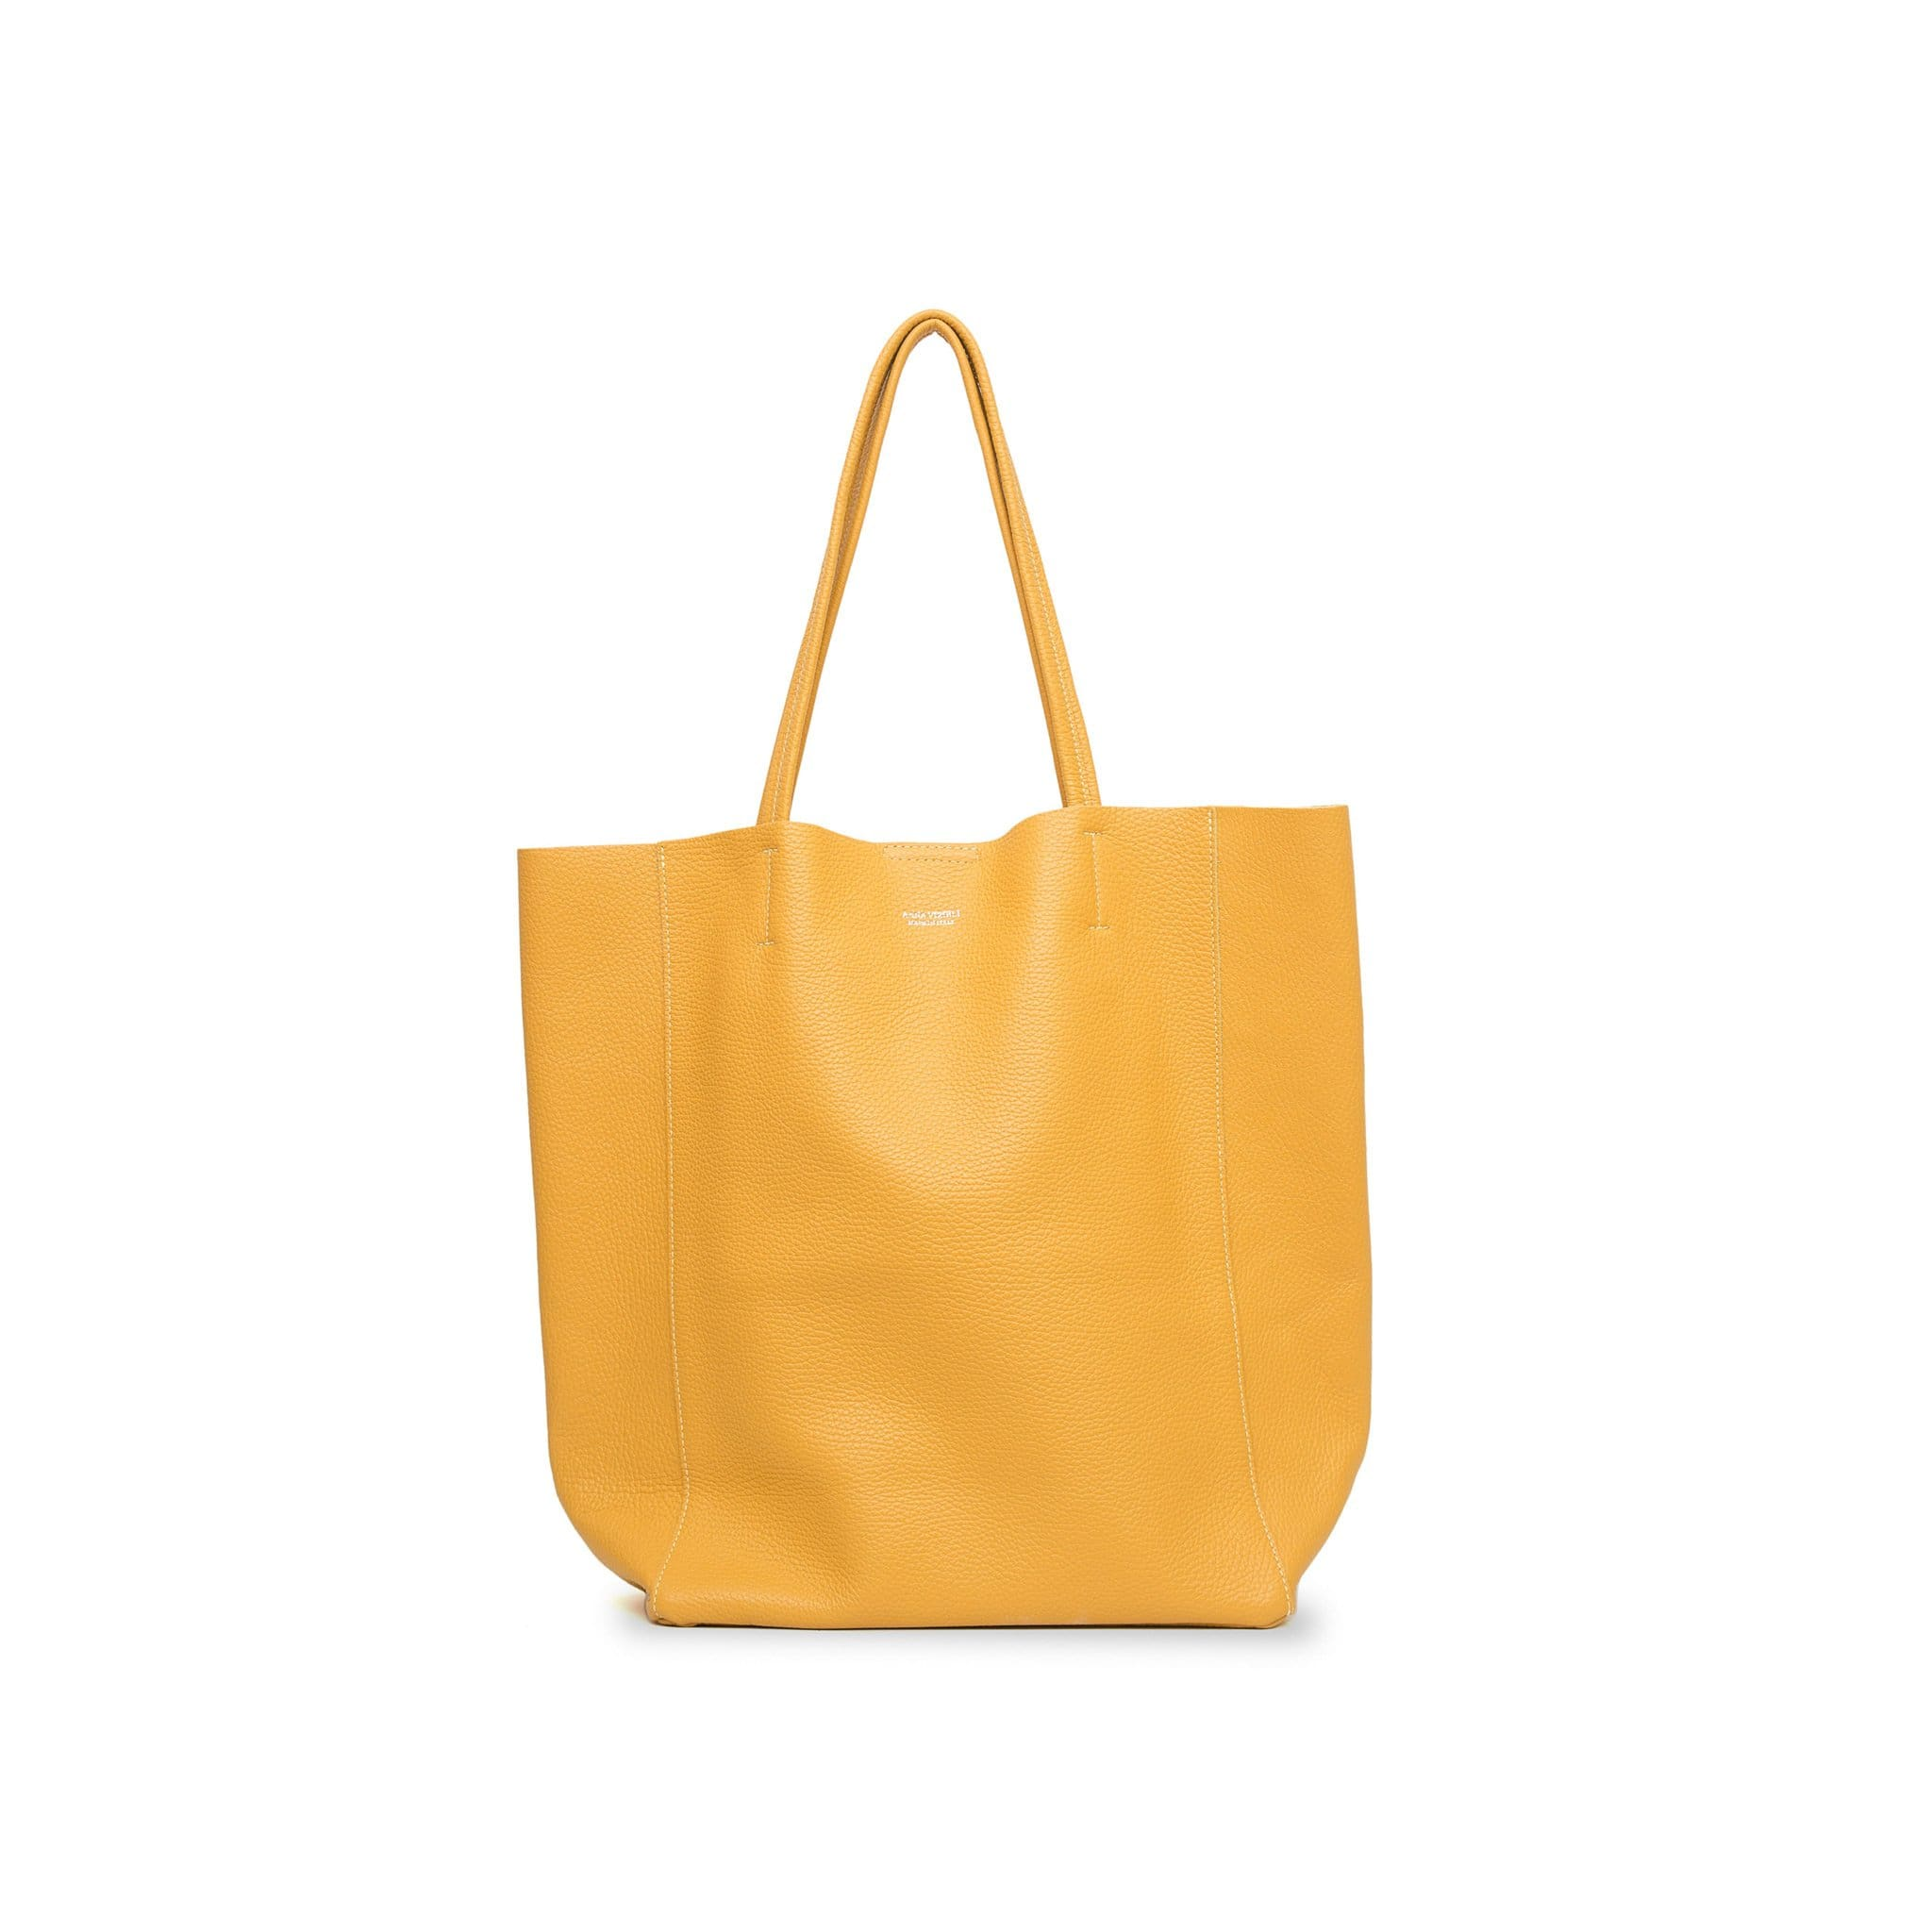 Lidia Palermo Soft Leather Tote - Ochre